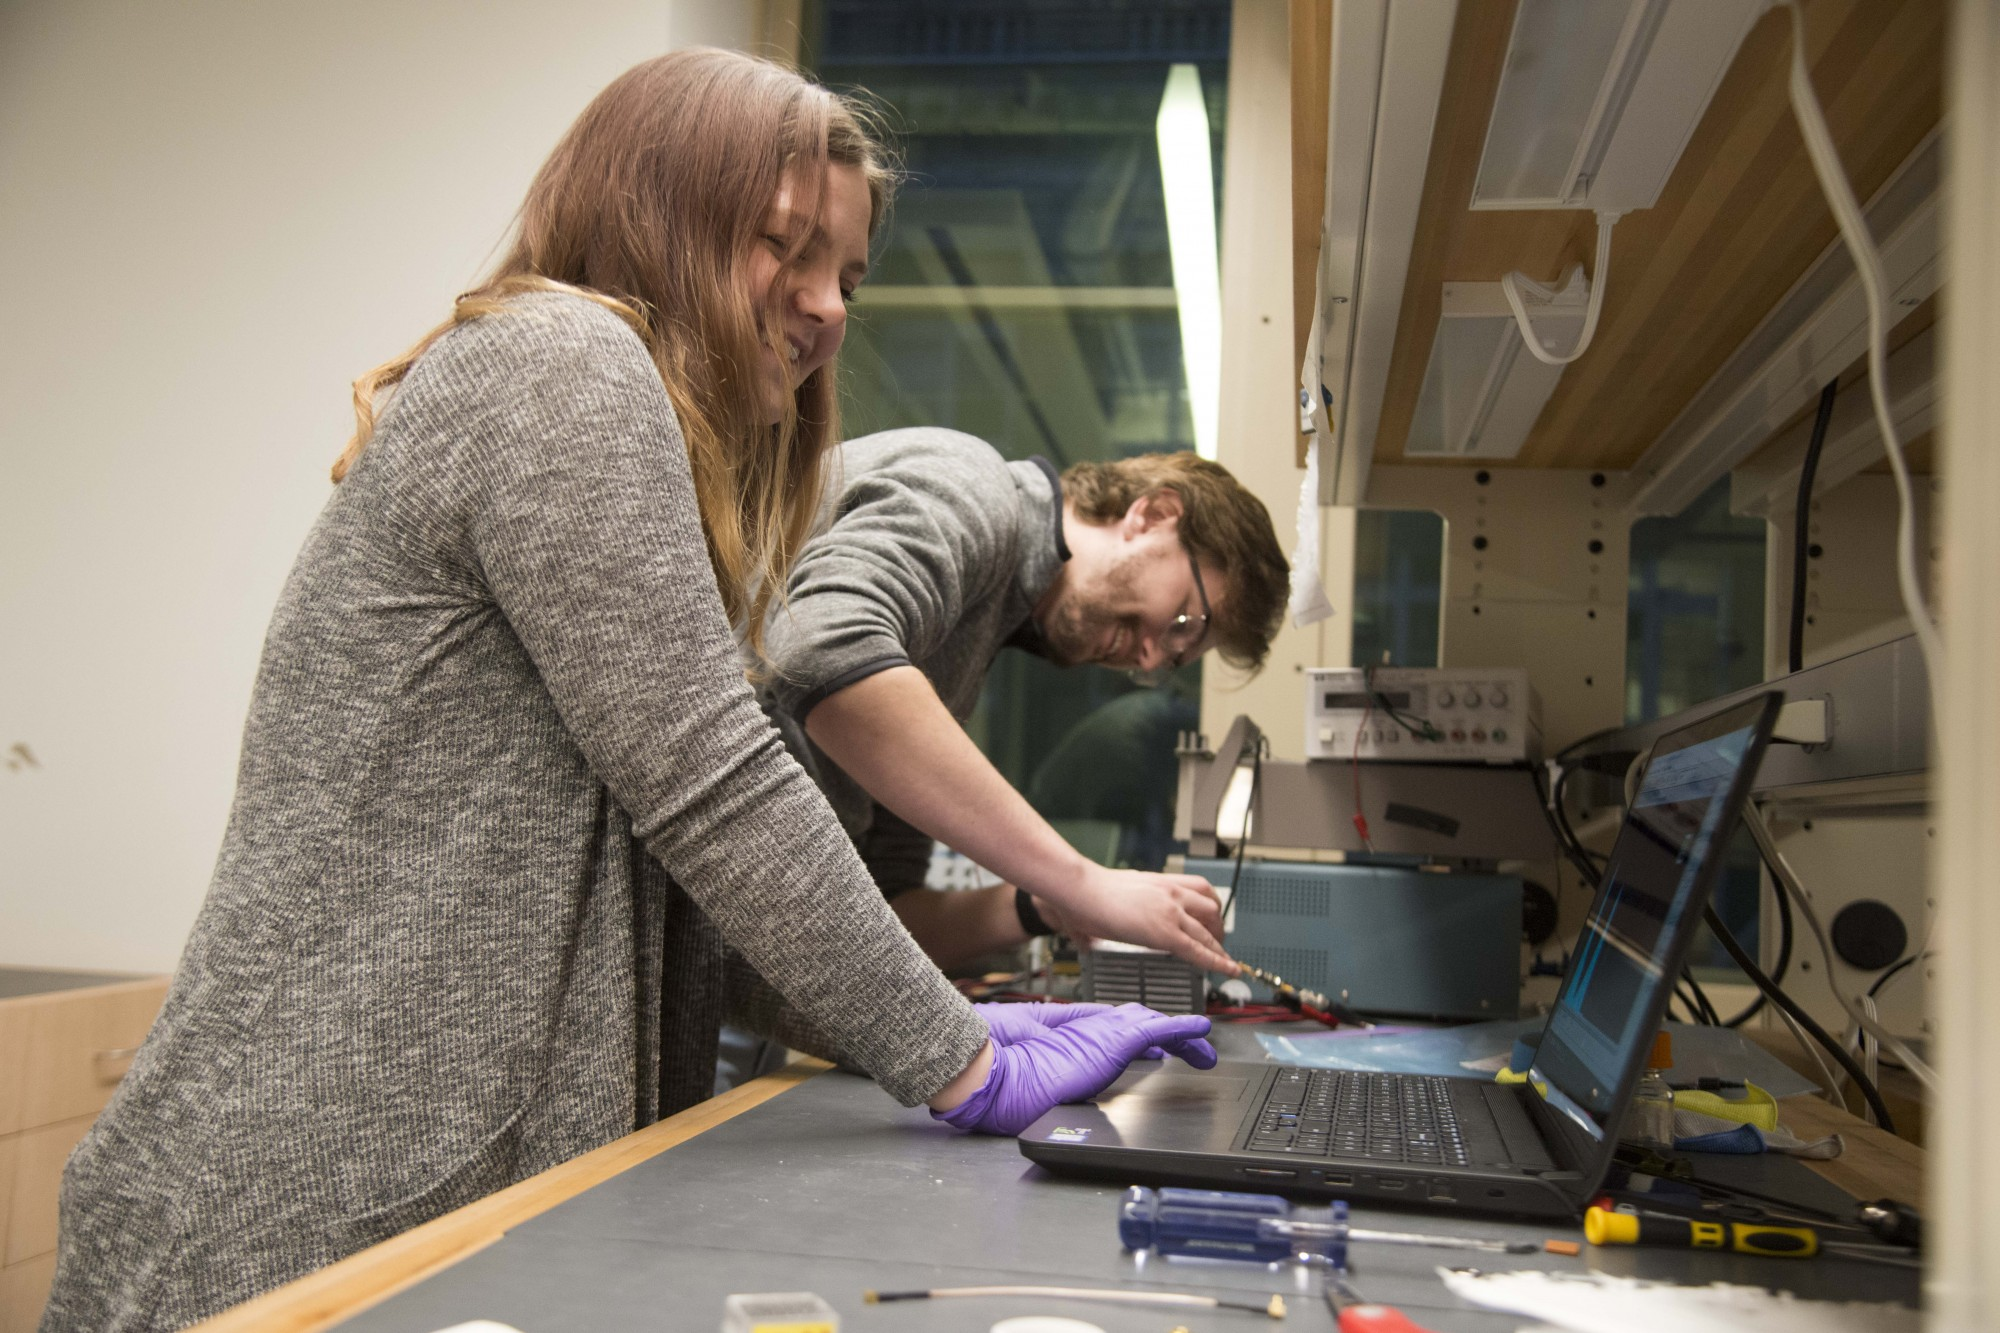 Project manager Jenna Burgett, left, and chief engineer Kyle Houser, right, discuss their process of creating and designing SOCRATES in a lab in Tate Hall on Friday, Nov. 8. SOCRATES, which NASA launched into space on Saturday, Nov. 2, is expected to begin orbiting the earth in January of 2020.